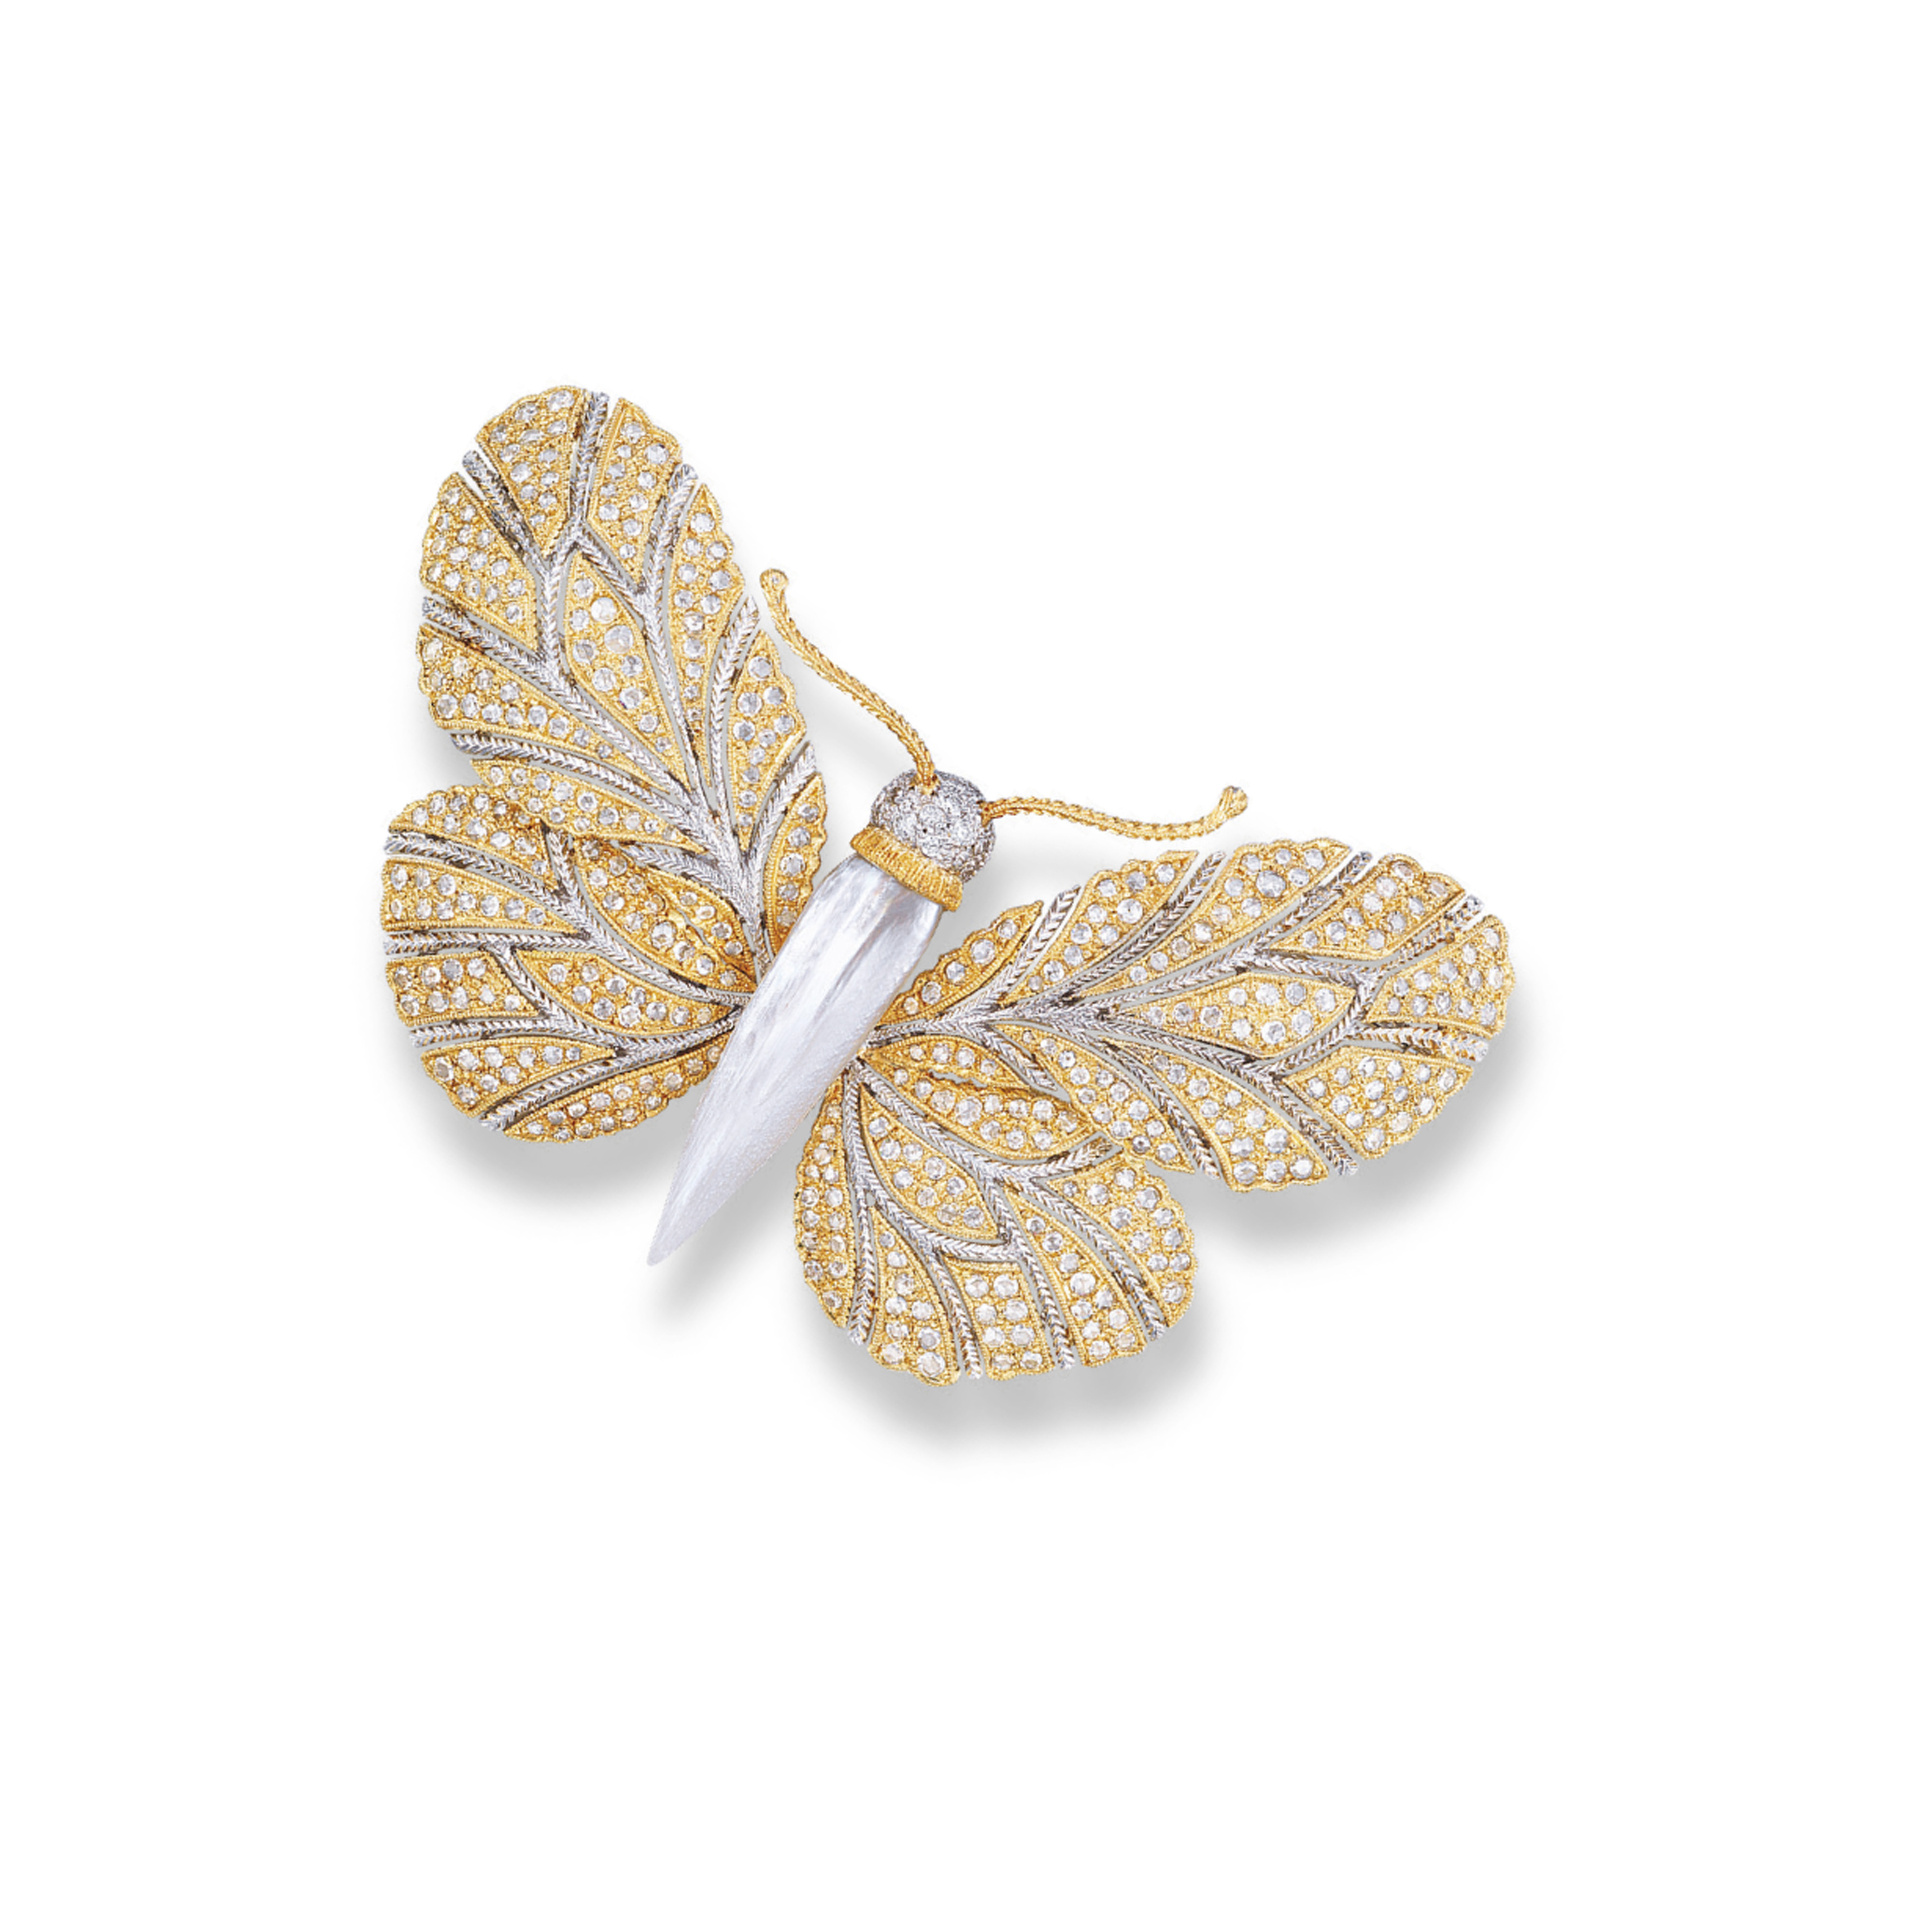 A MOTHER-OF-PEARL AND DIAMOND BROOCH, BY BUCCELLATI